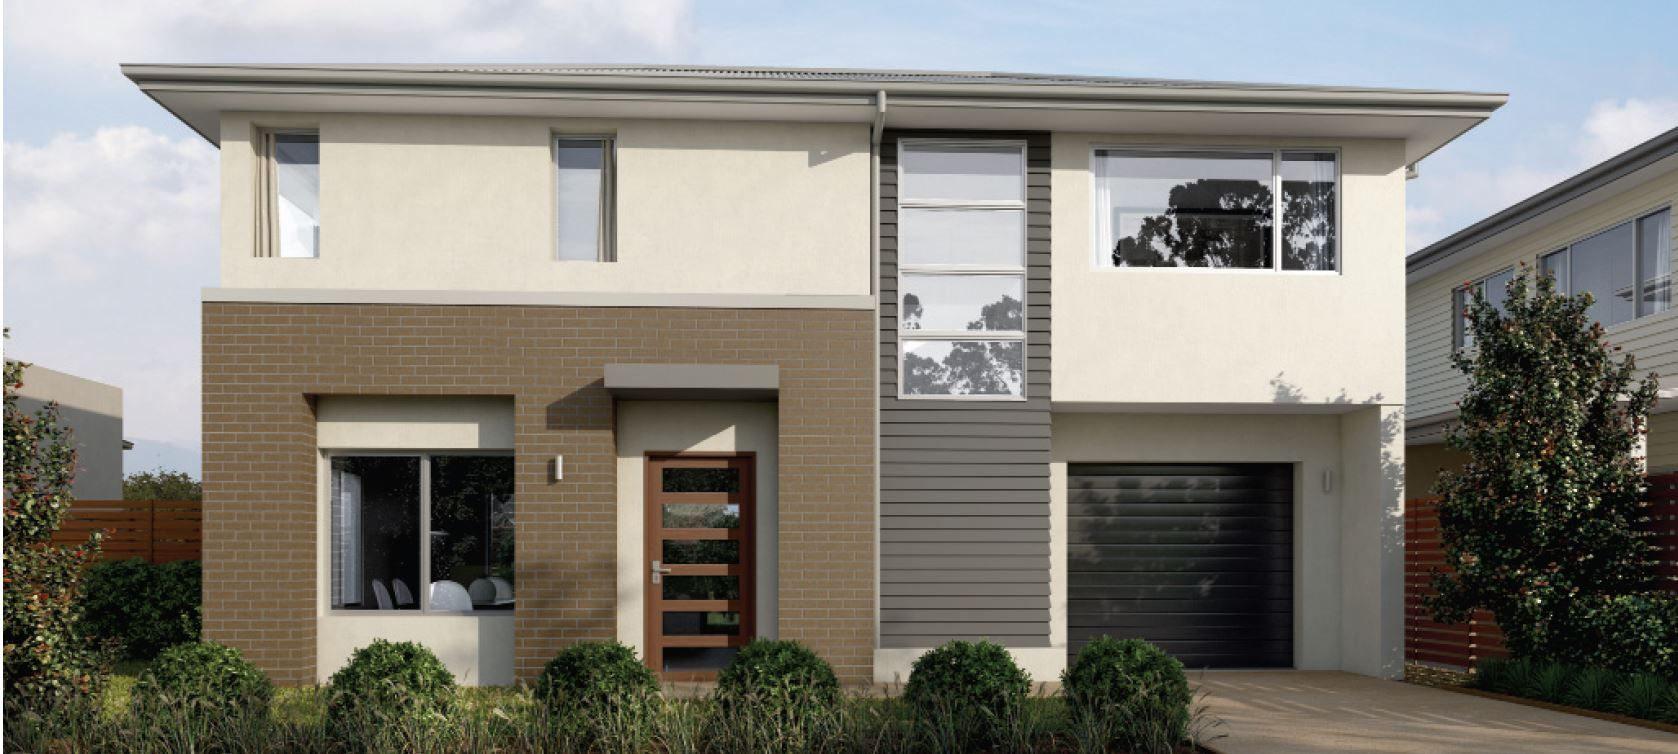 168 Holden Drive, Oran Park NSW 2570, Image 0